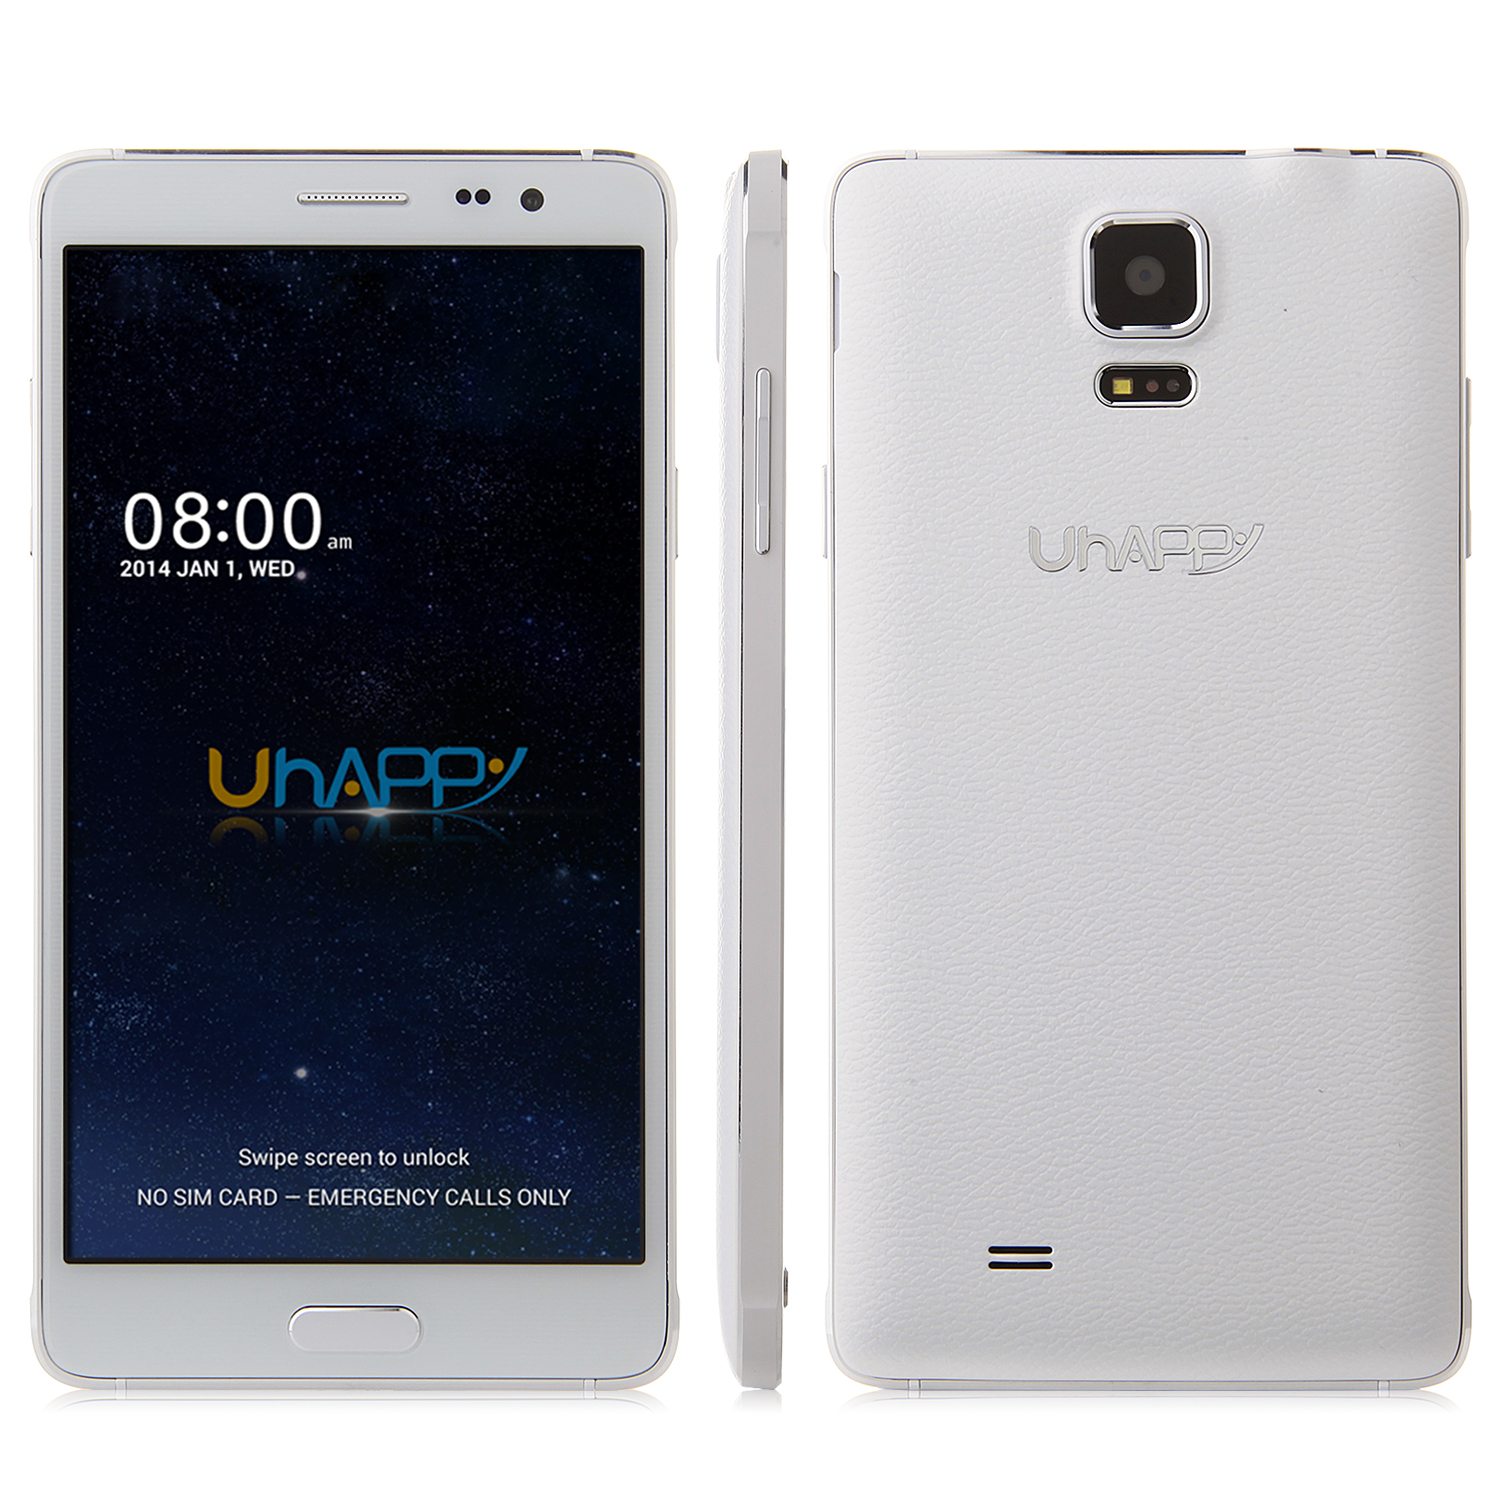 Uhappy UP570 Smartphone Android 4.4 MTK6582 Quad Core 1GB 8GB 5.7 Inch HD Screen White